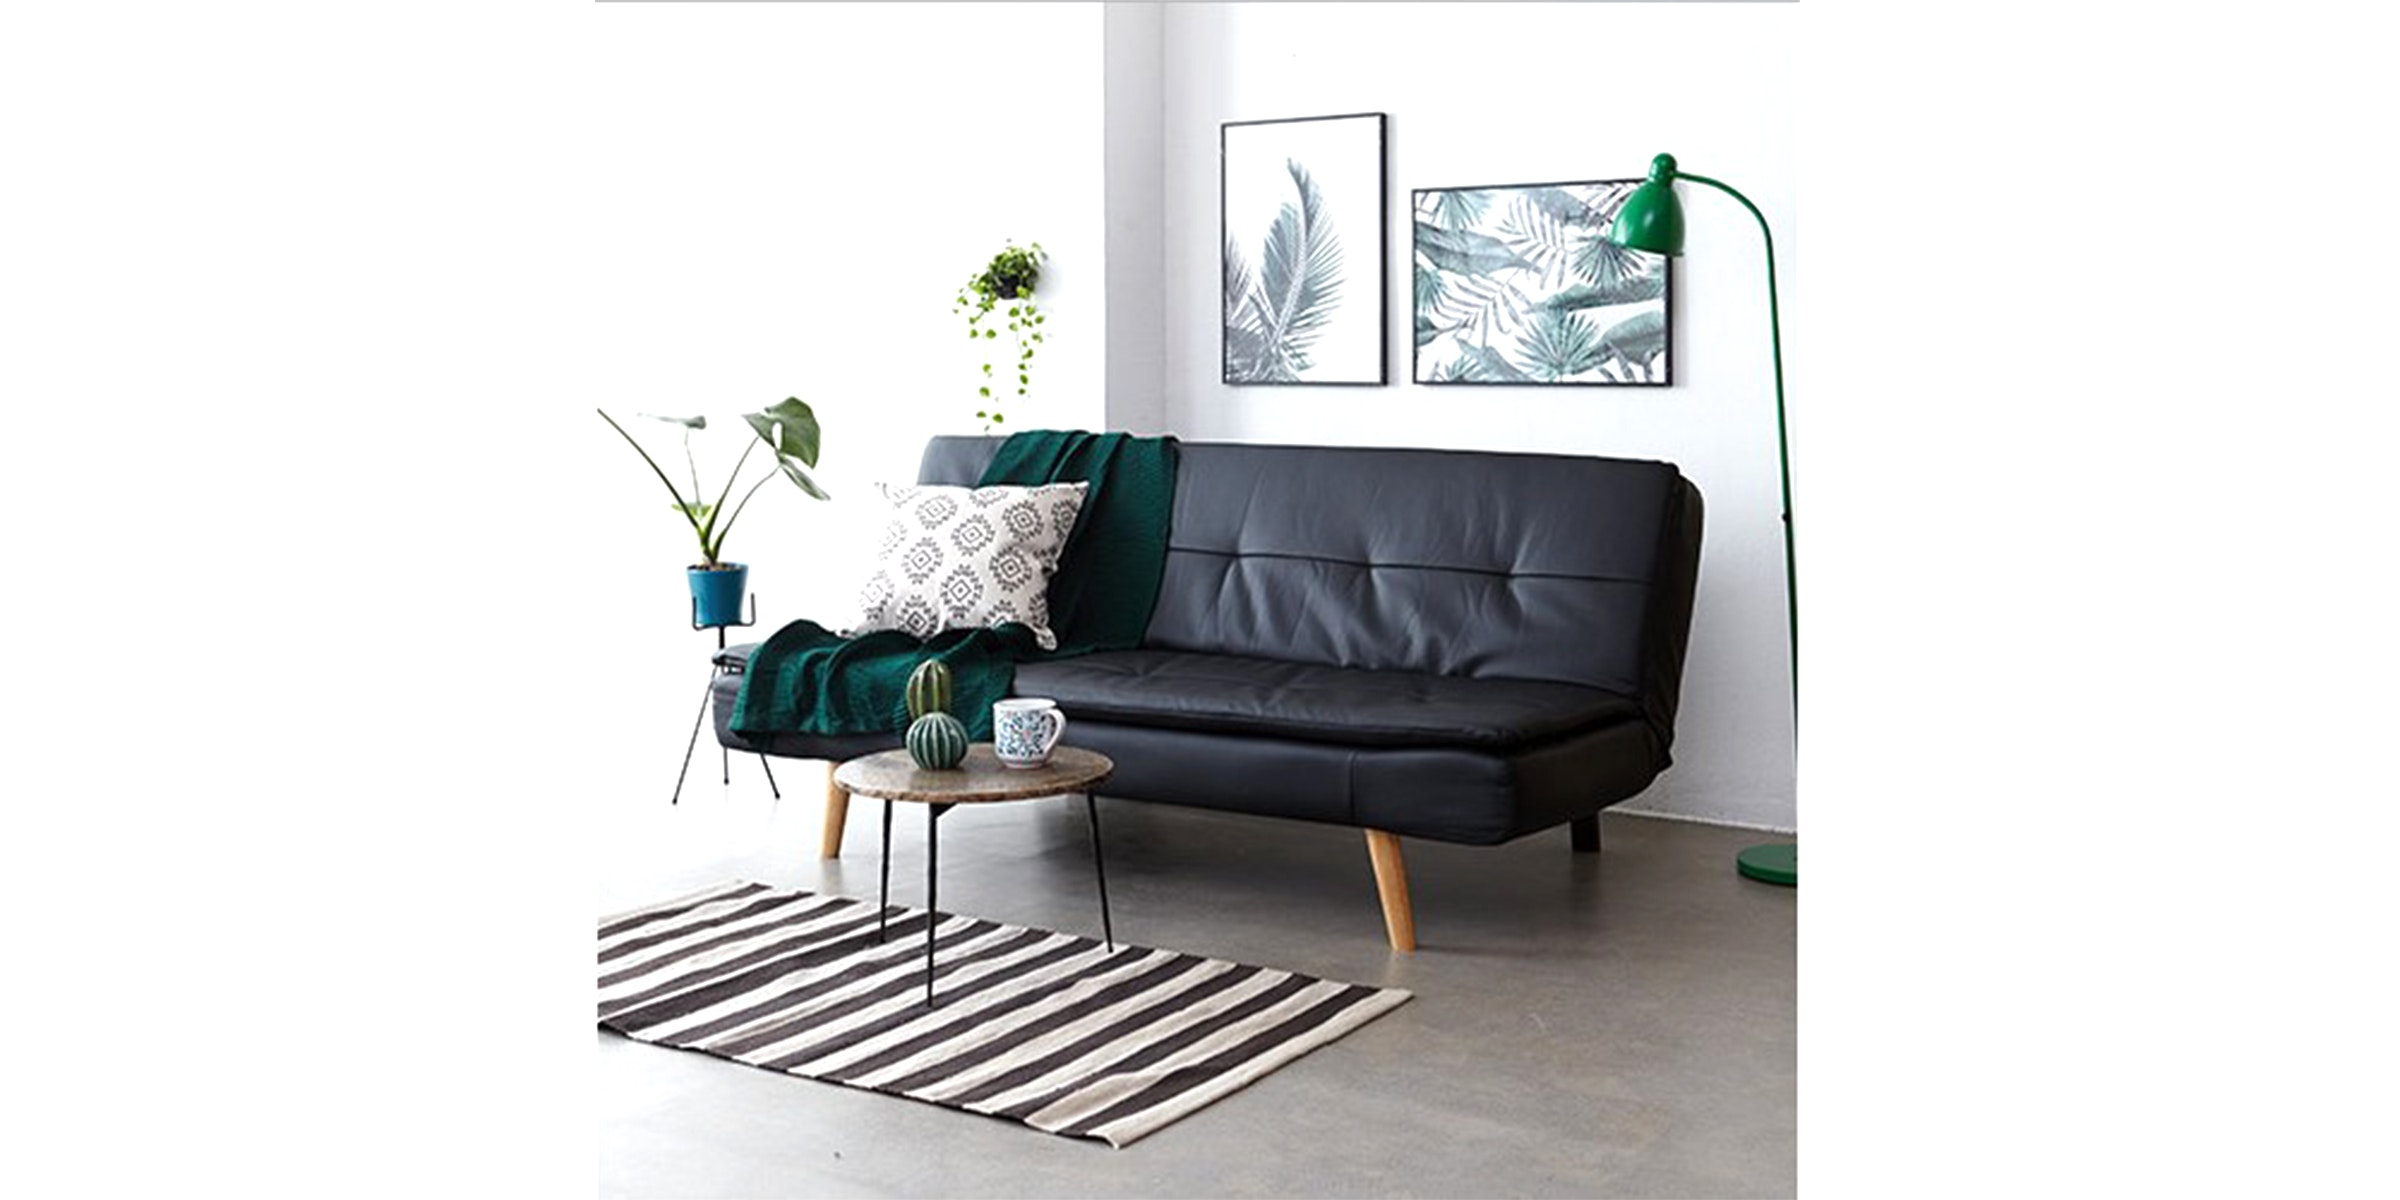 Olive House Sofa Bed Napoli - Black